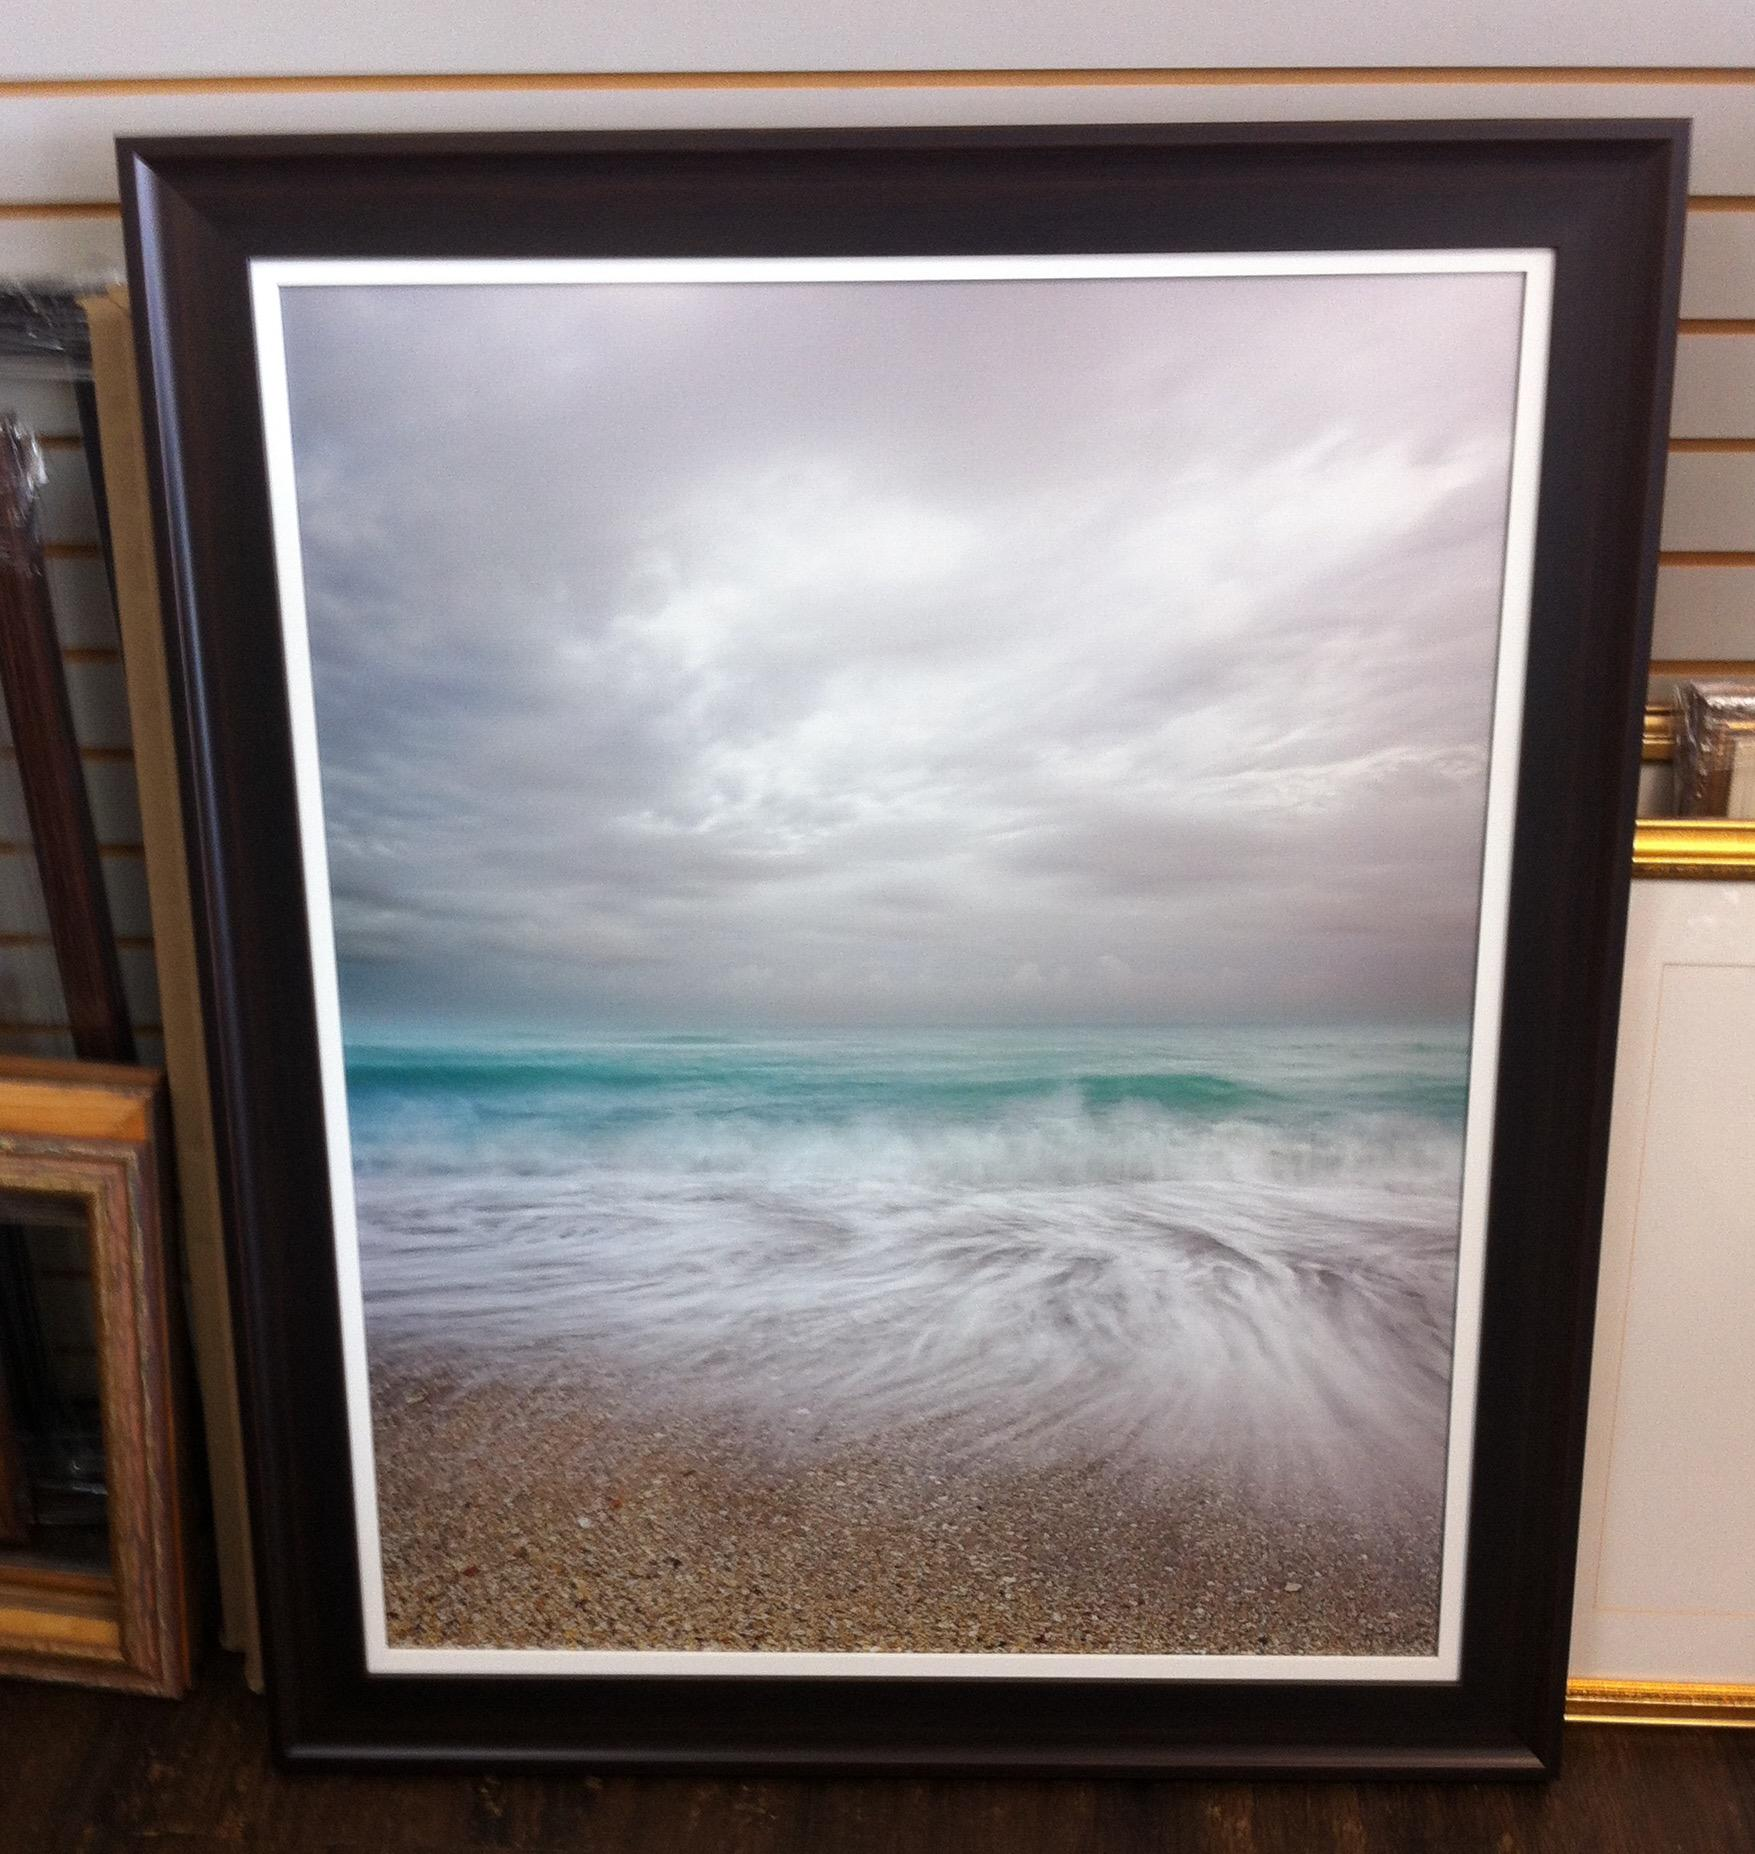 artistic expressions custom picture framing coupons near me in oviedo 8coupons. Black Bedroom Furniture Sets. Home Design Ideas